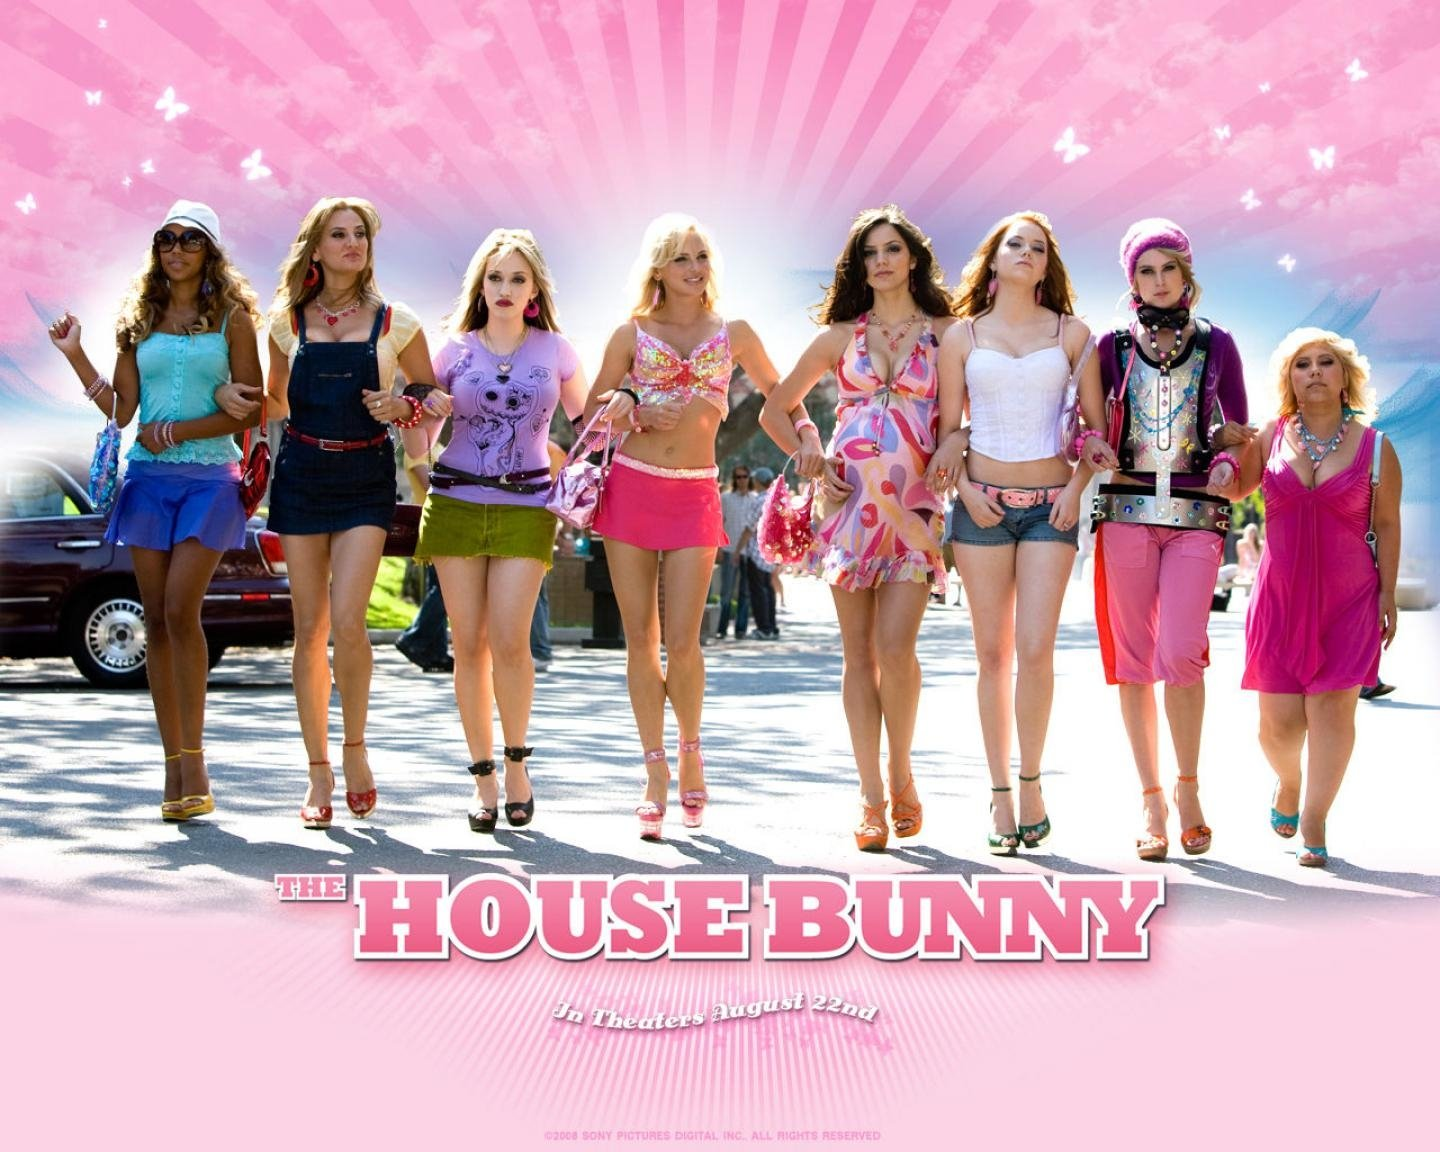 The house bunny 2008 movie poster